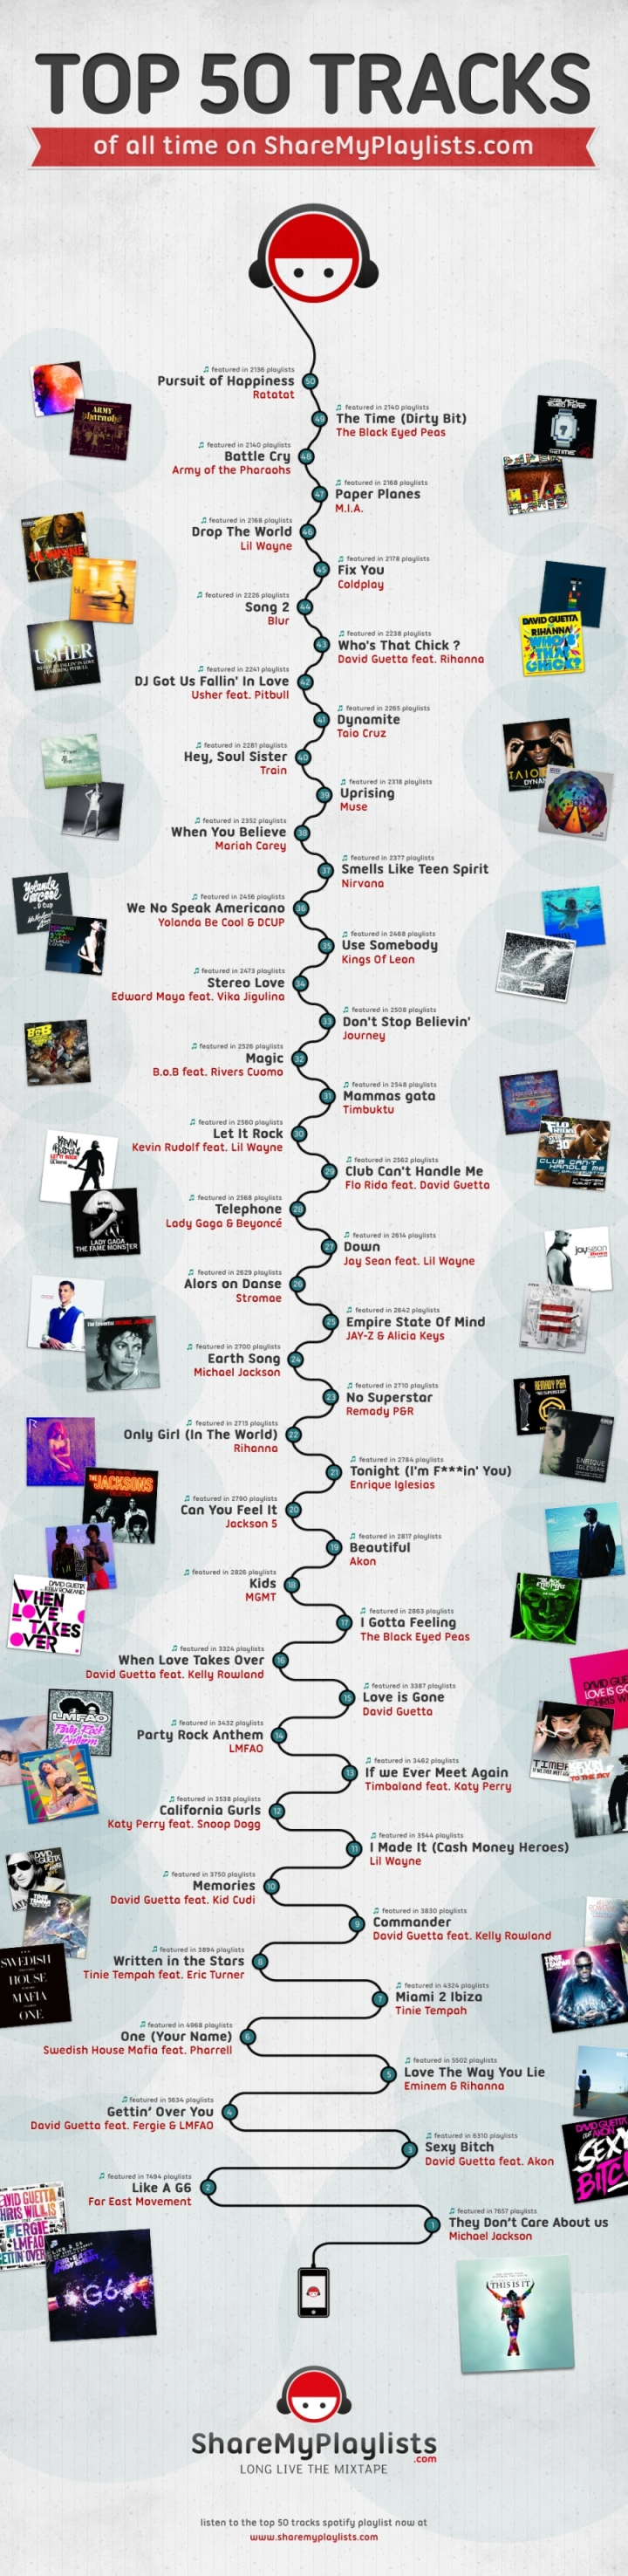 SMP infographic1 What are the most playlisted tracks on Spotify? You might be surprised